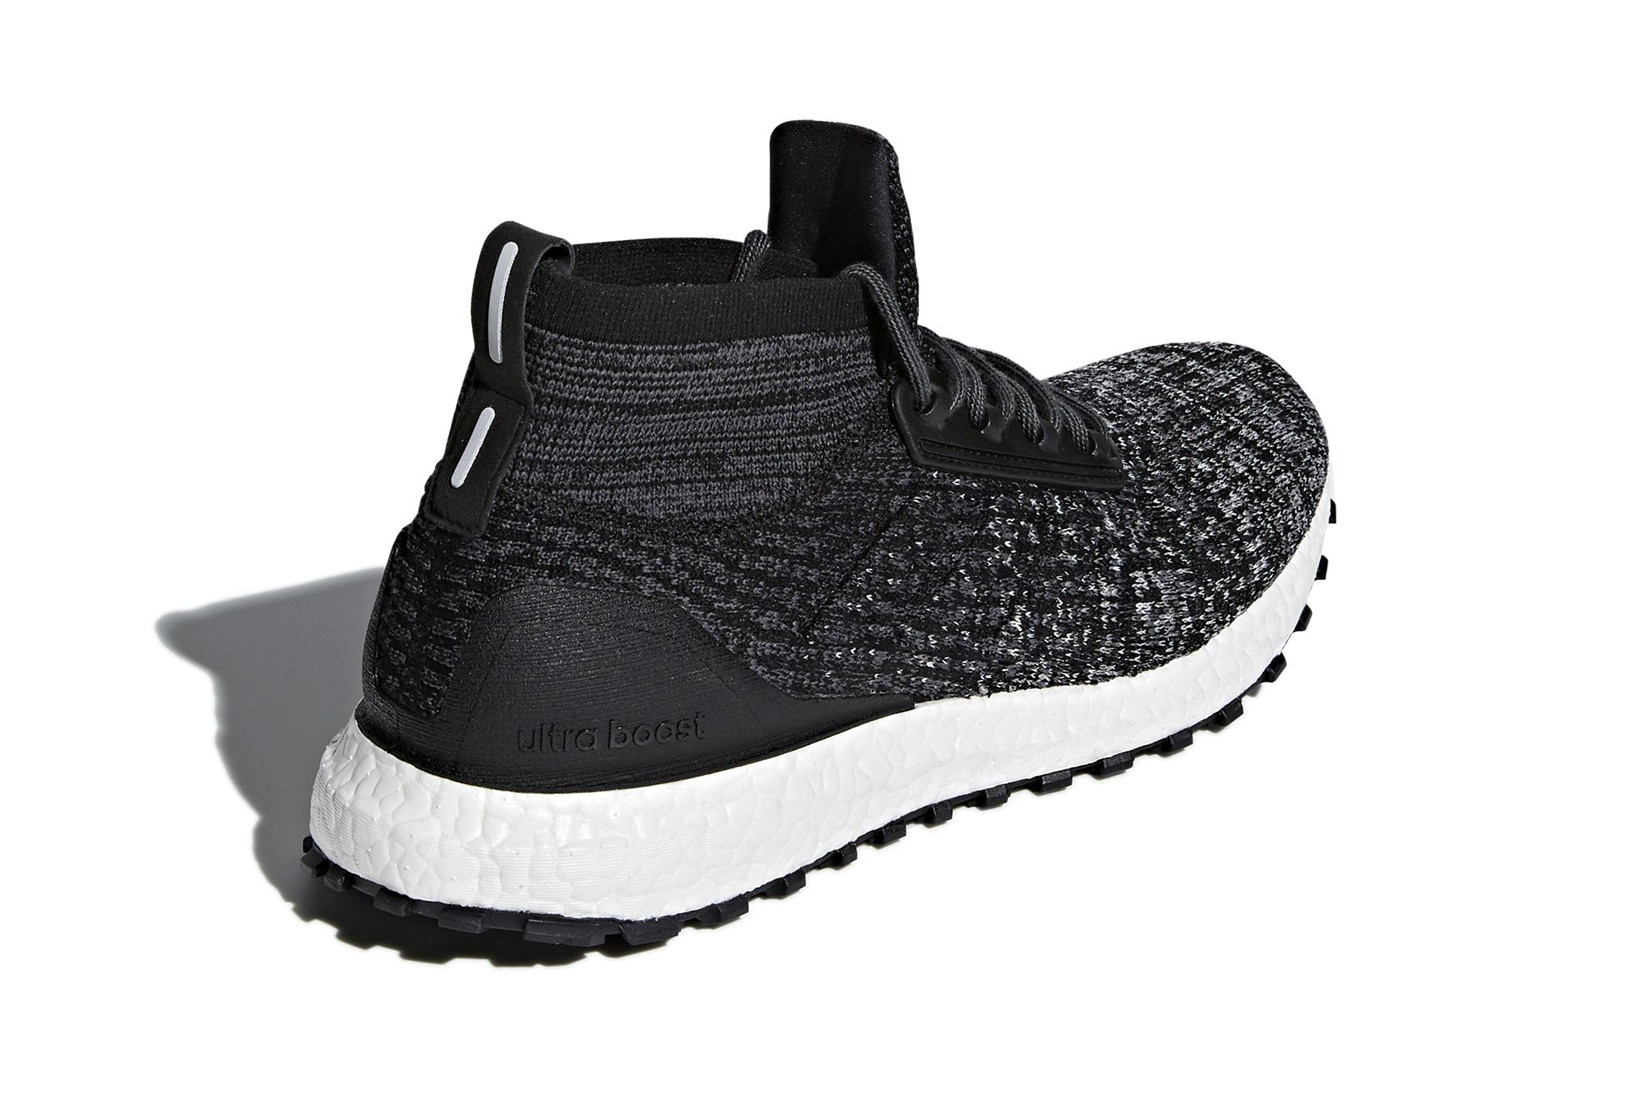 adidas x Reigning Champ UltraBOOST Mid